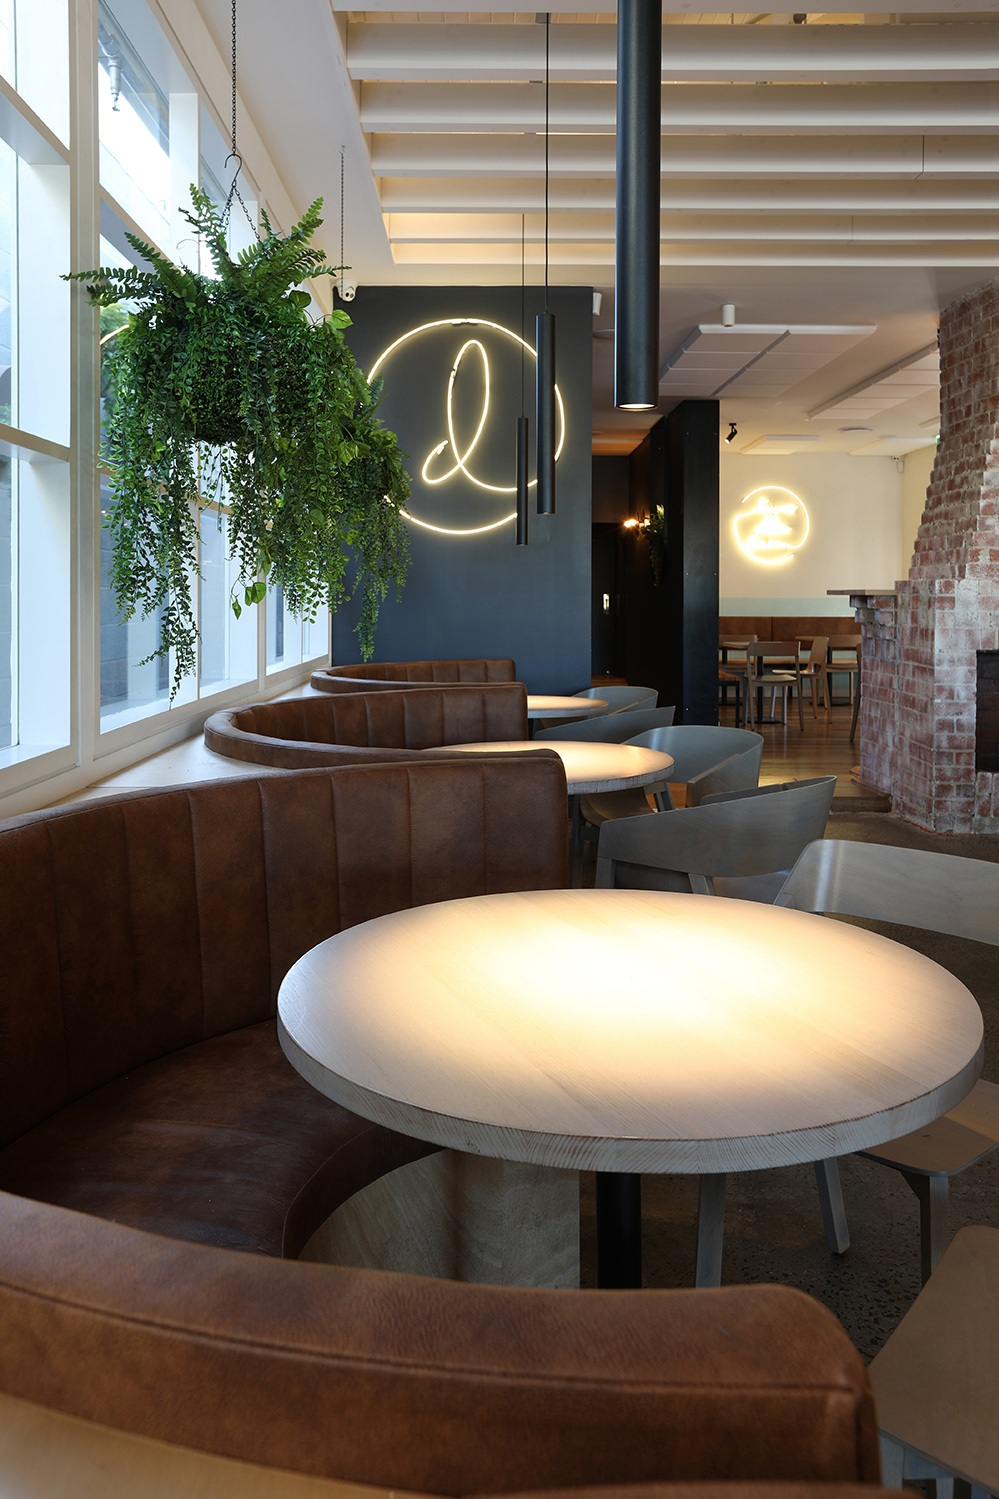 Daydreamers Cafe - Beaconsfield, Victoria